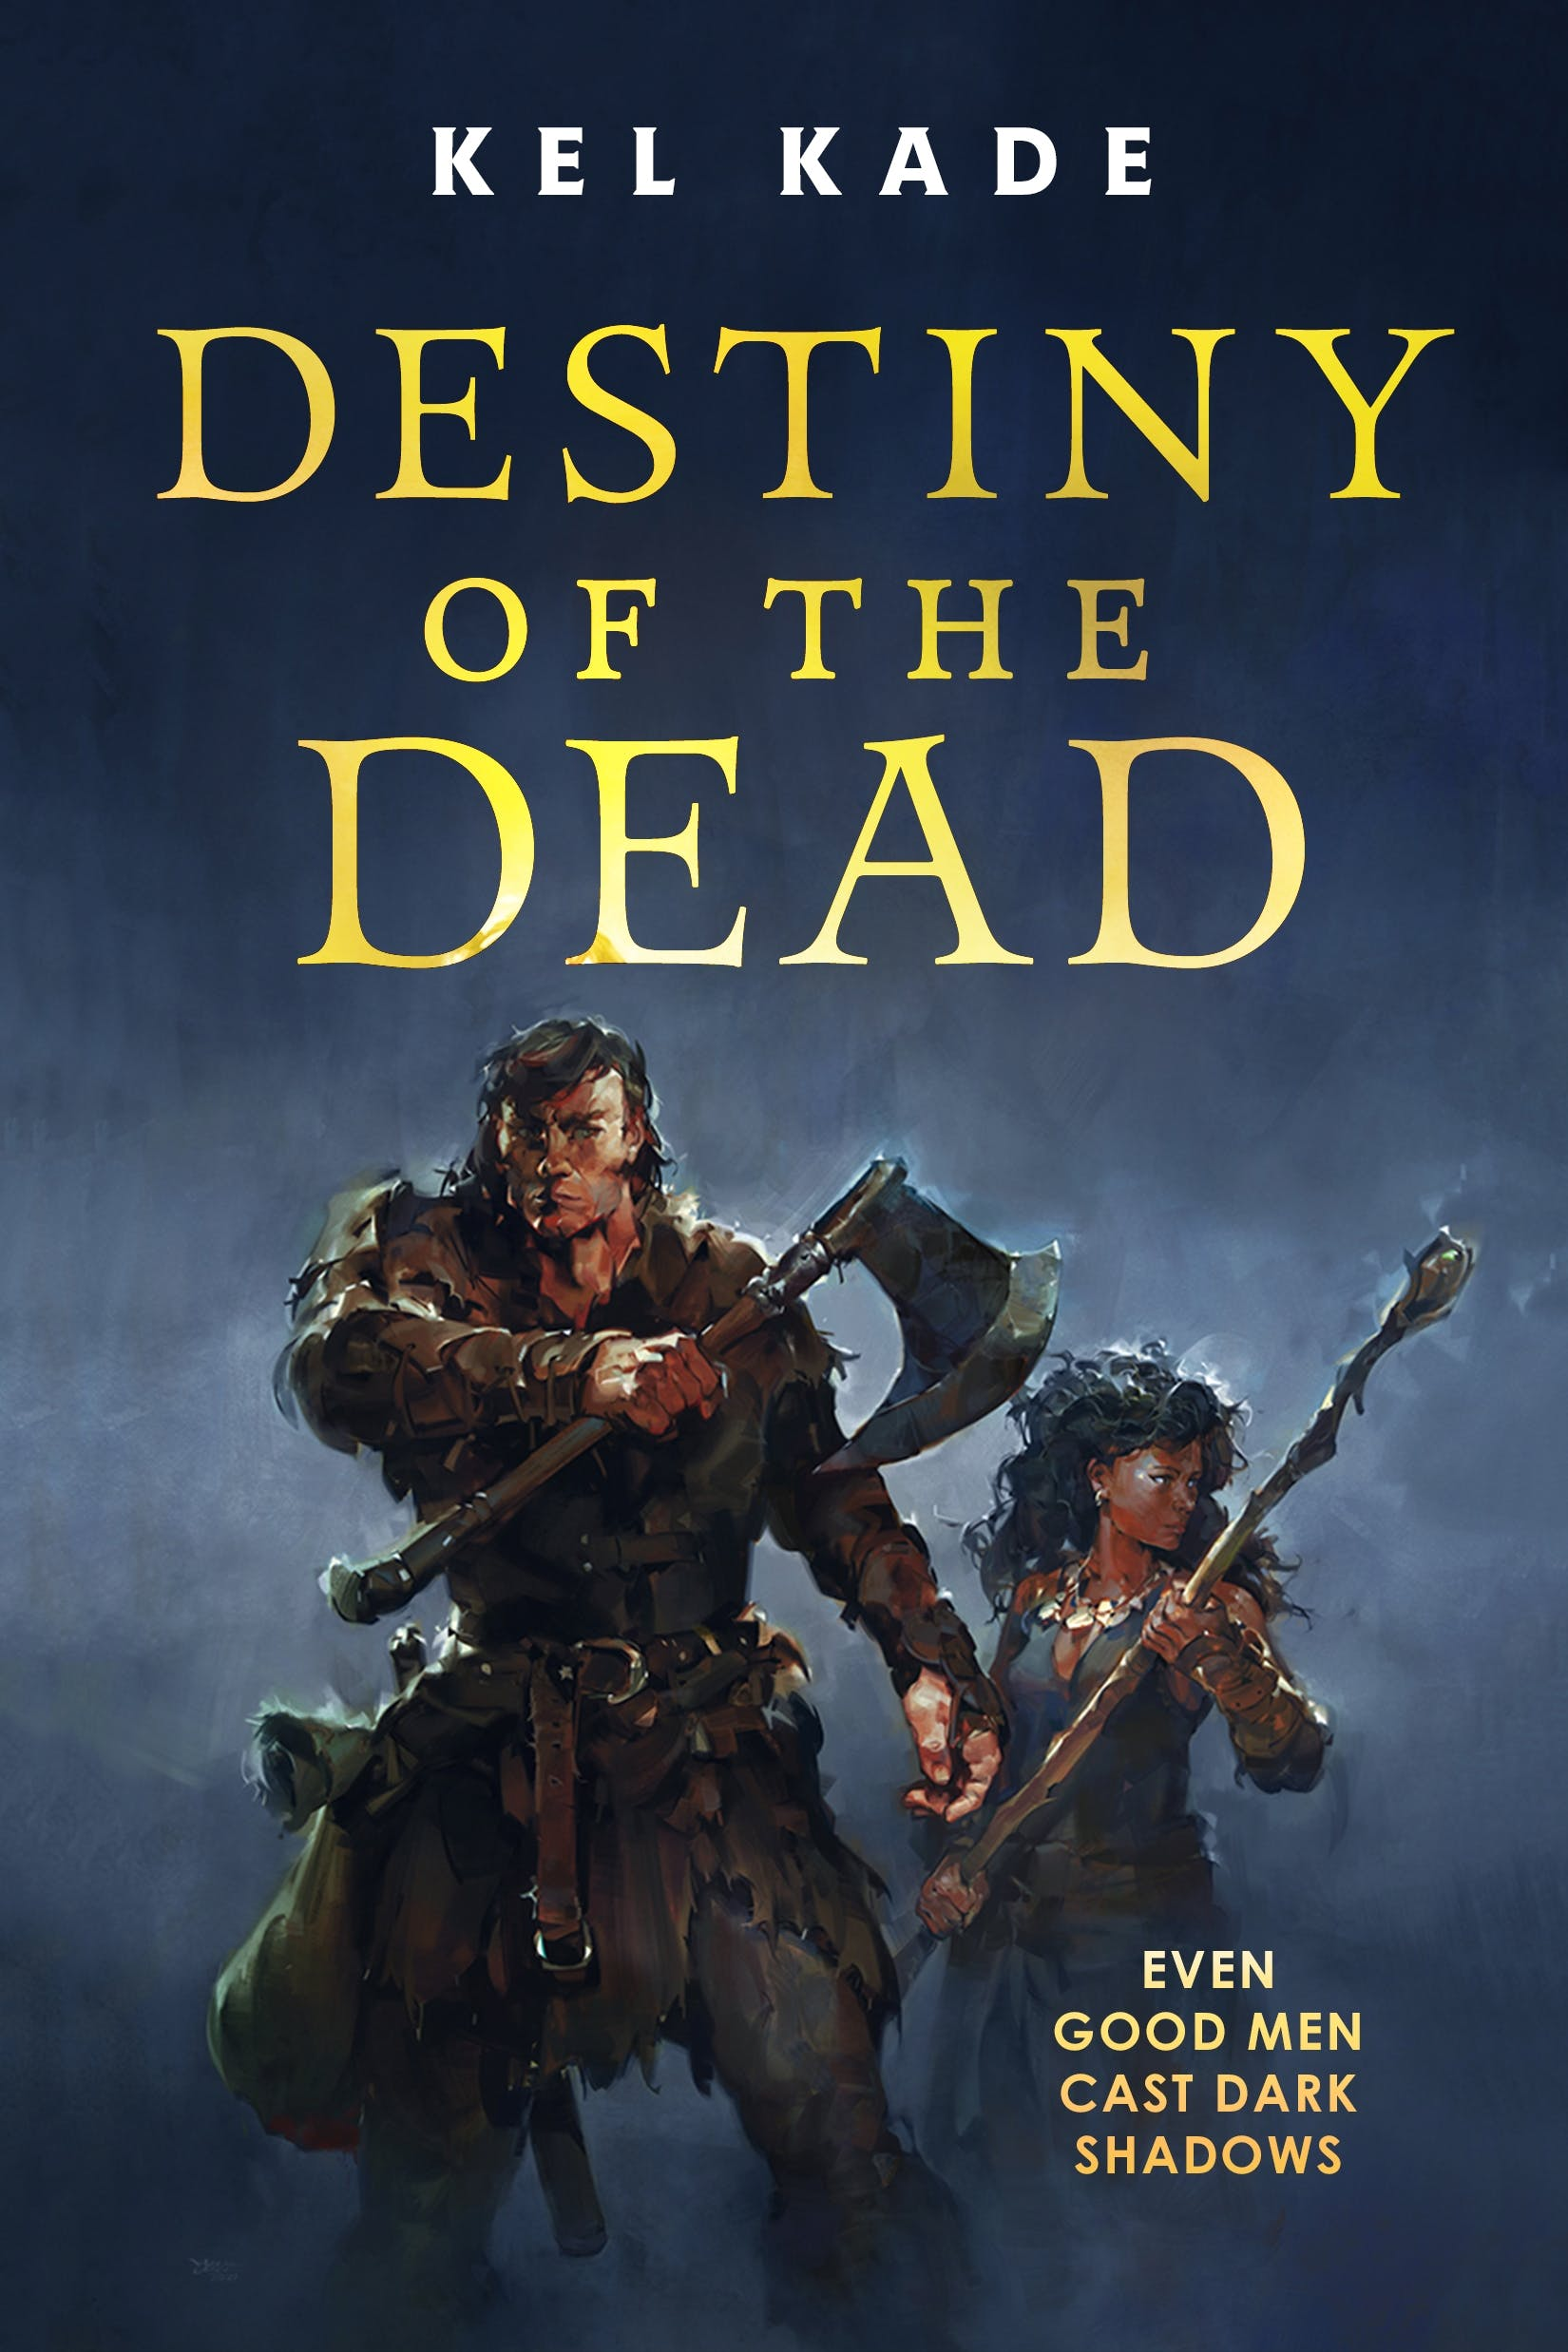 Image of Destiny of the Dead